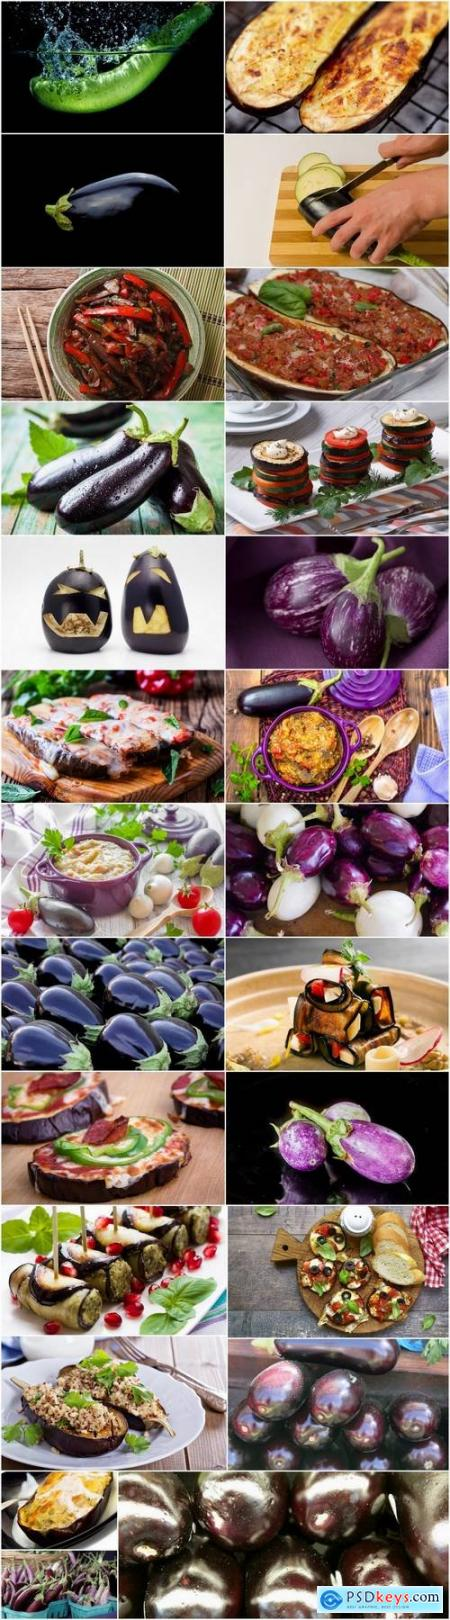 Eggplant vegetable dish salad 25 HQ Jpeg